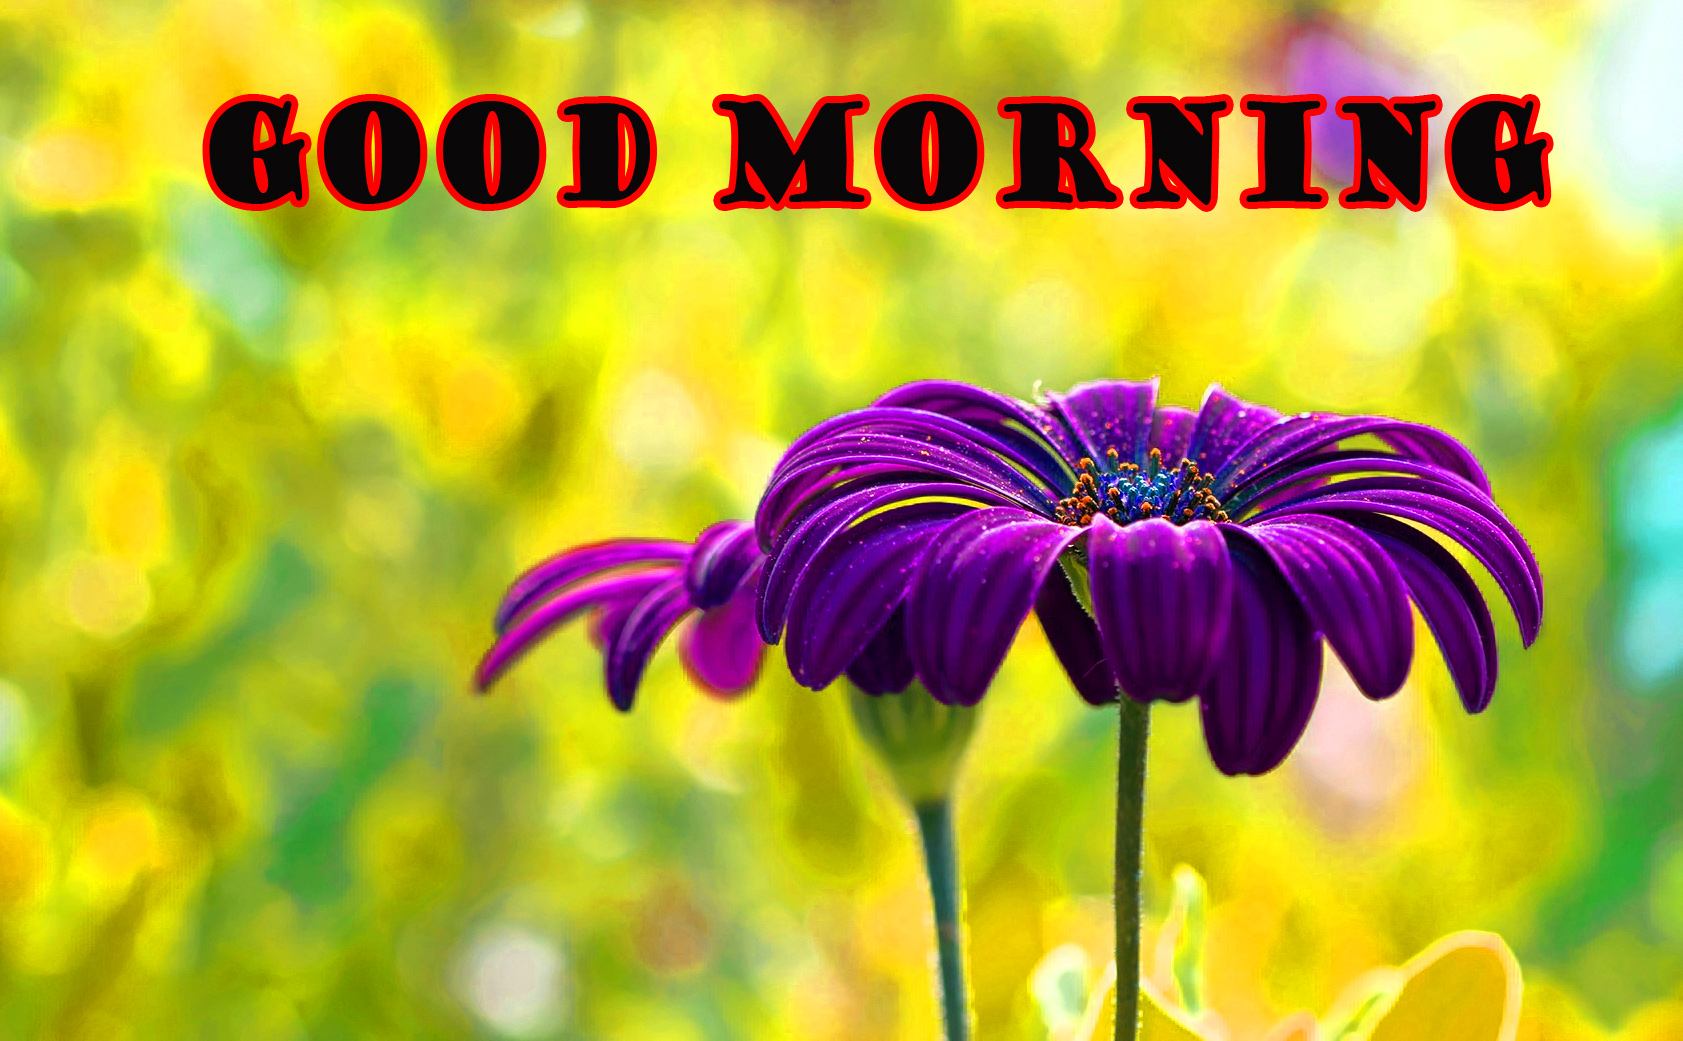 Good Morning Flowers Wallpaper Pictures Free Download